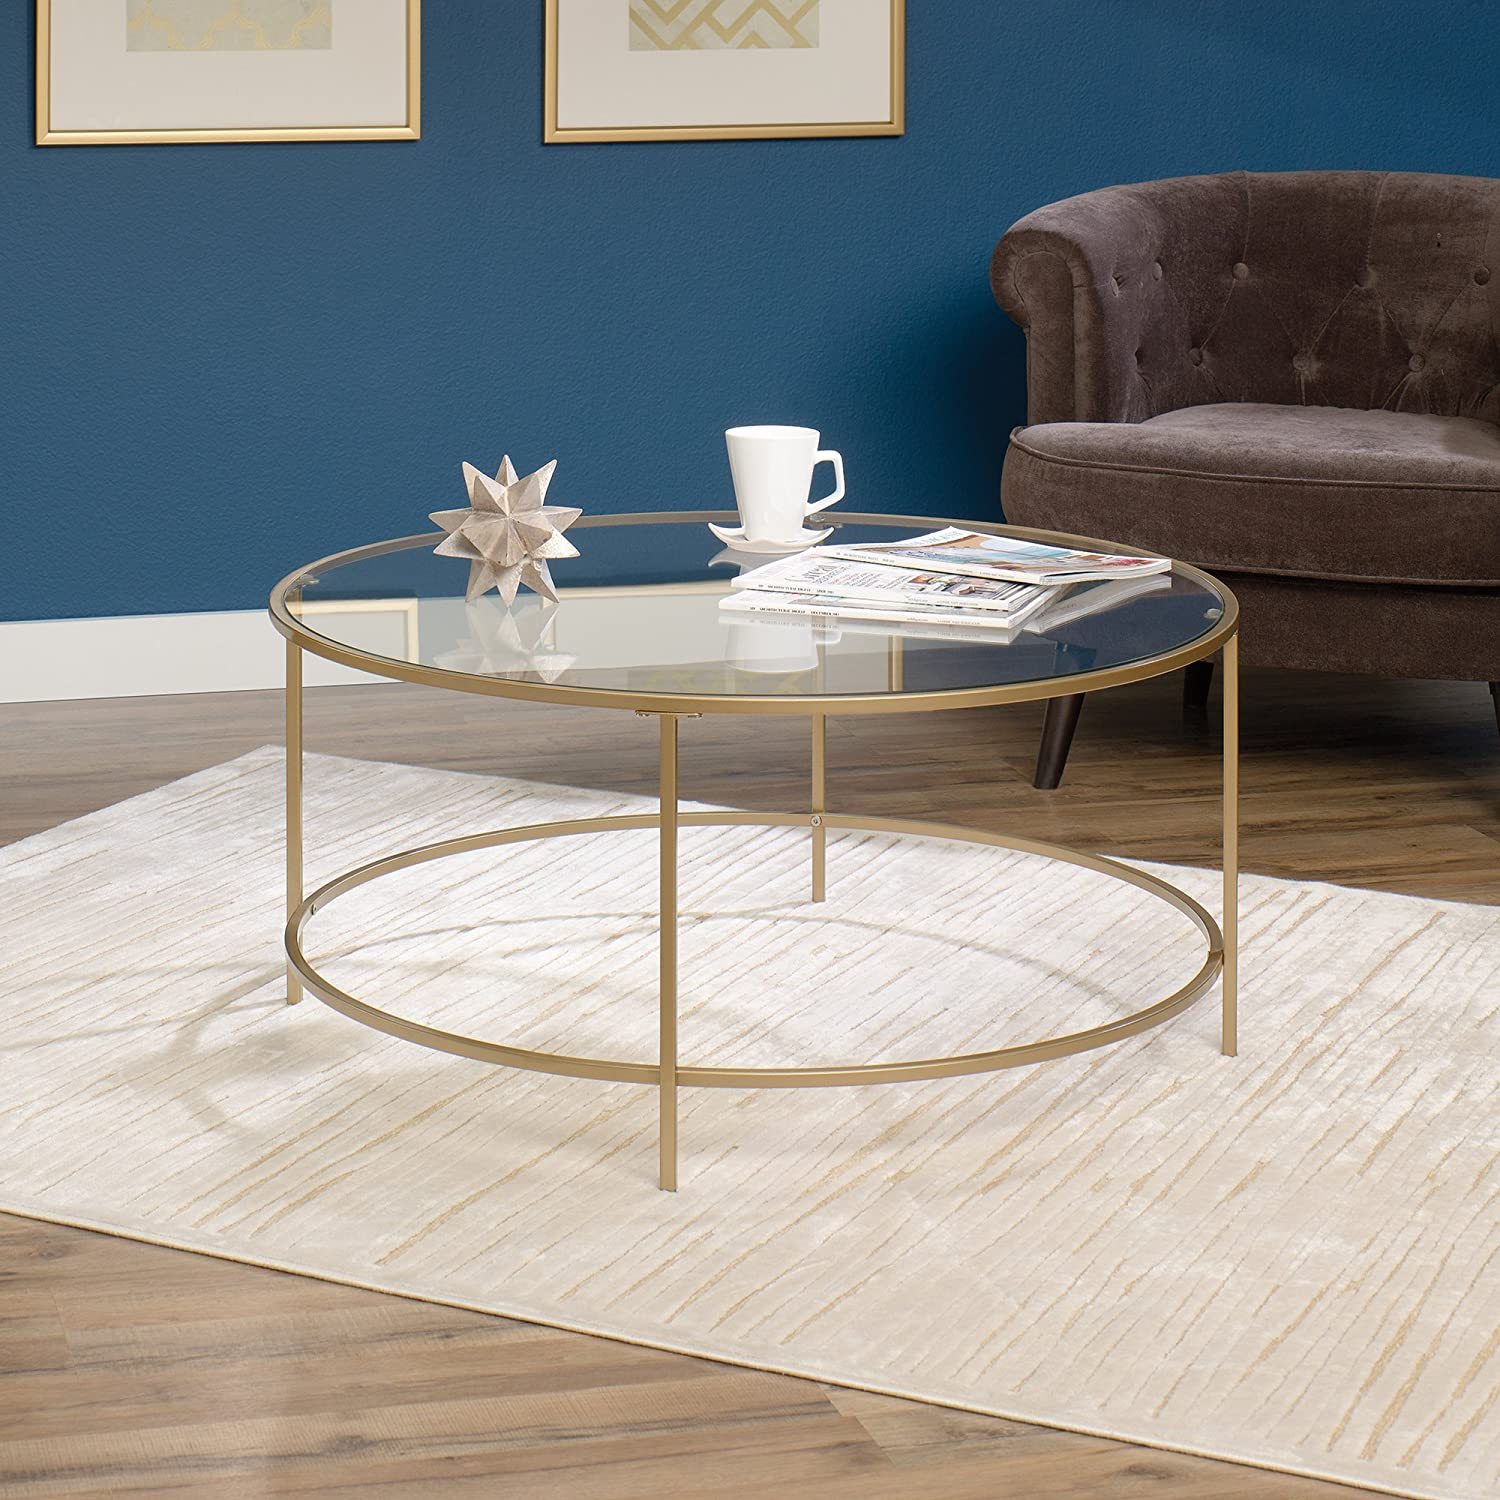 Amazon round side table - Amazon Com Sauder International Lux Round Coffee Table In Satin Gold Kitchen Dining